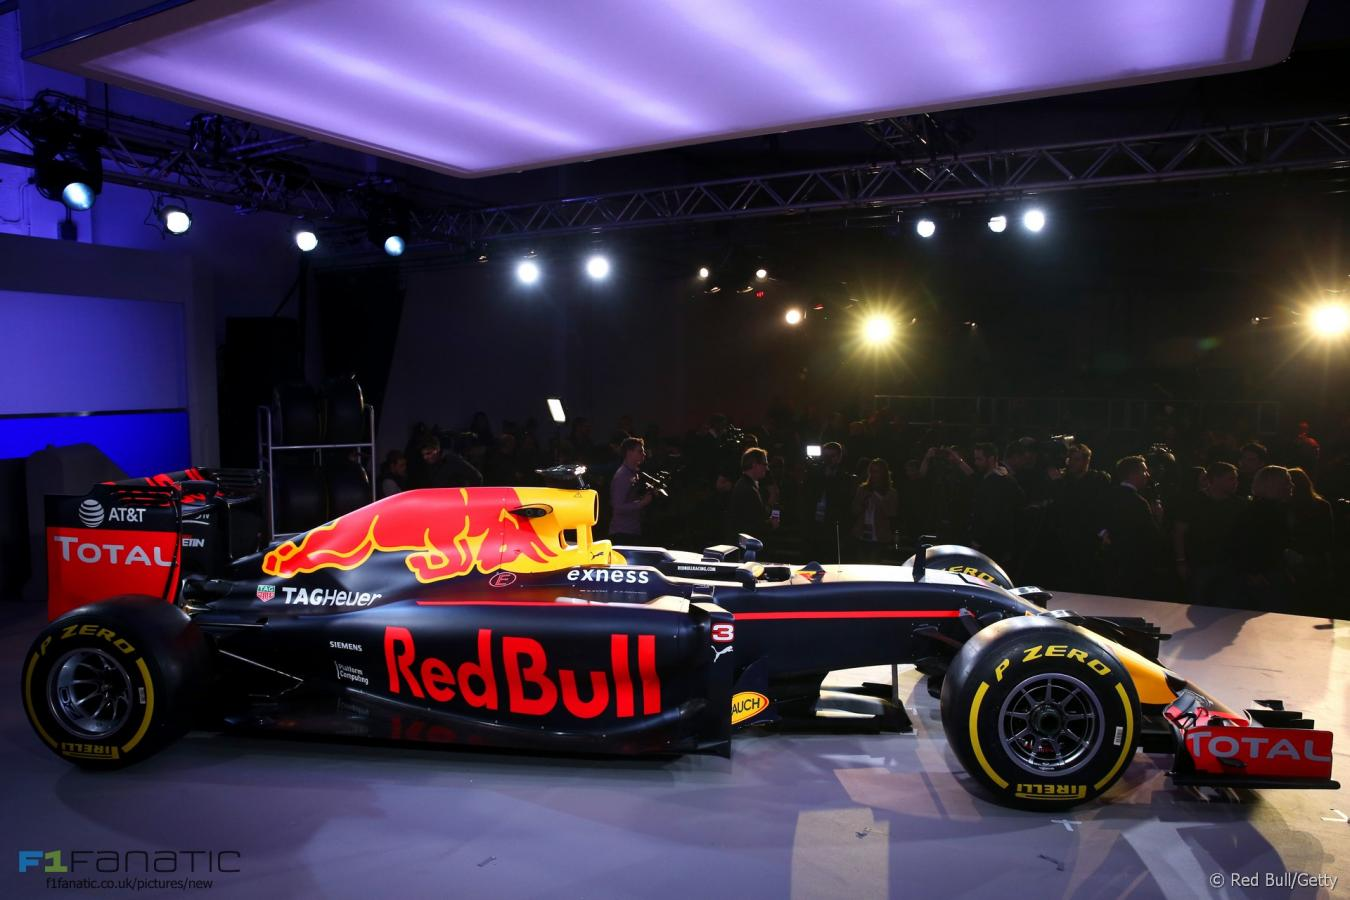 Click image for larger version  Name:red-bull-2016-livery-launch-5.jpg Views:1 Size:113.5 KB ID:2408